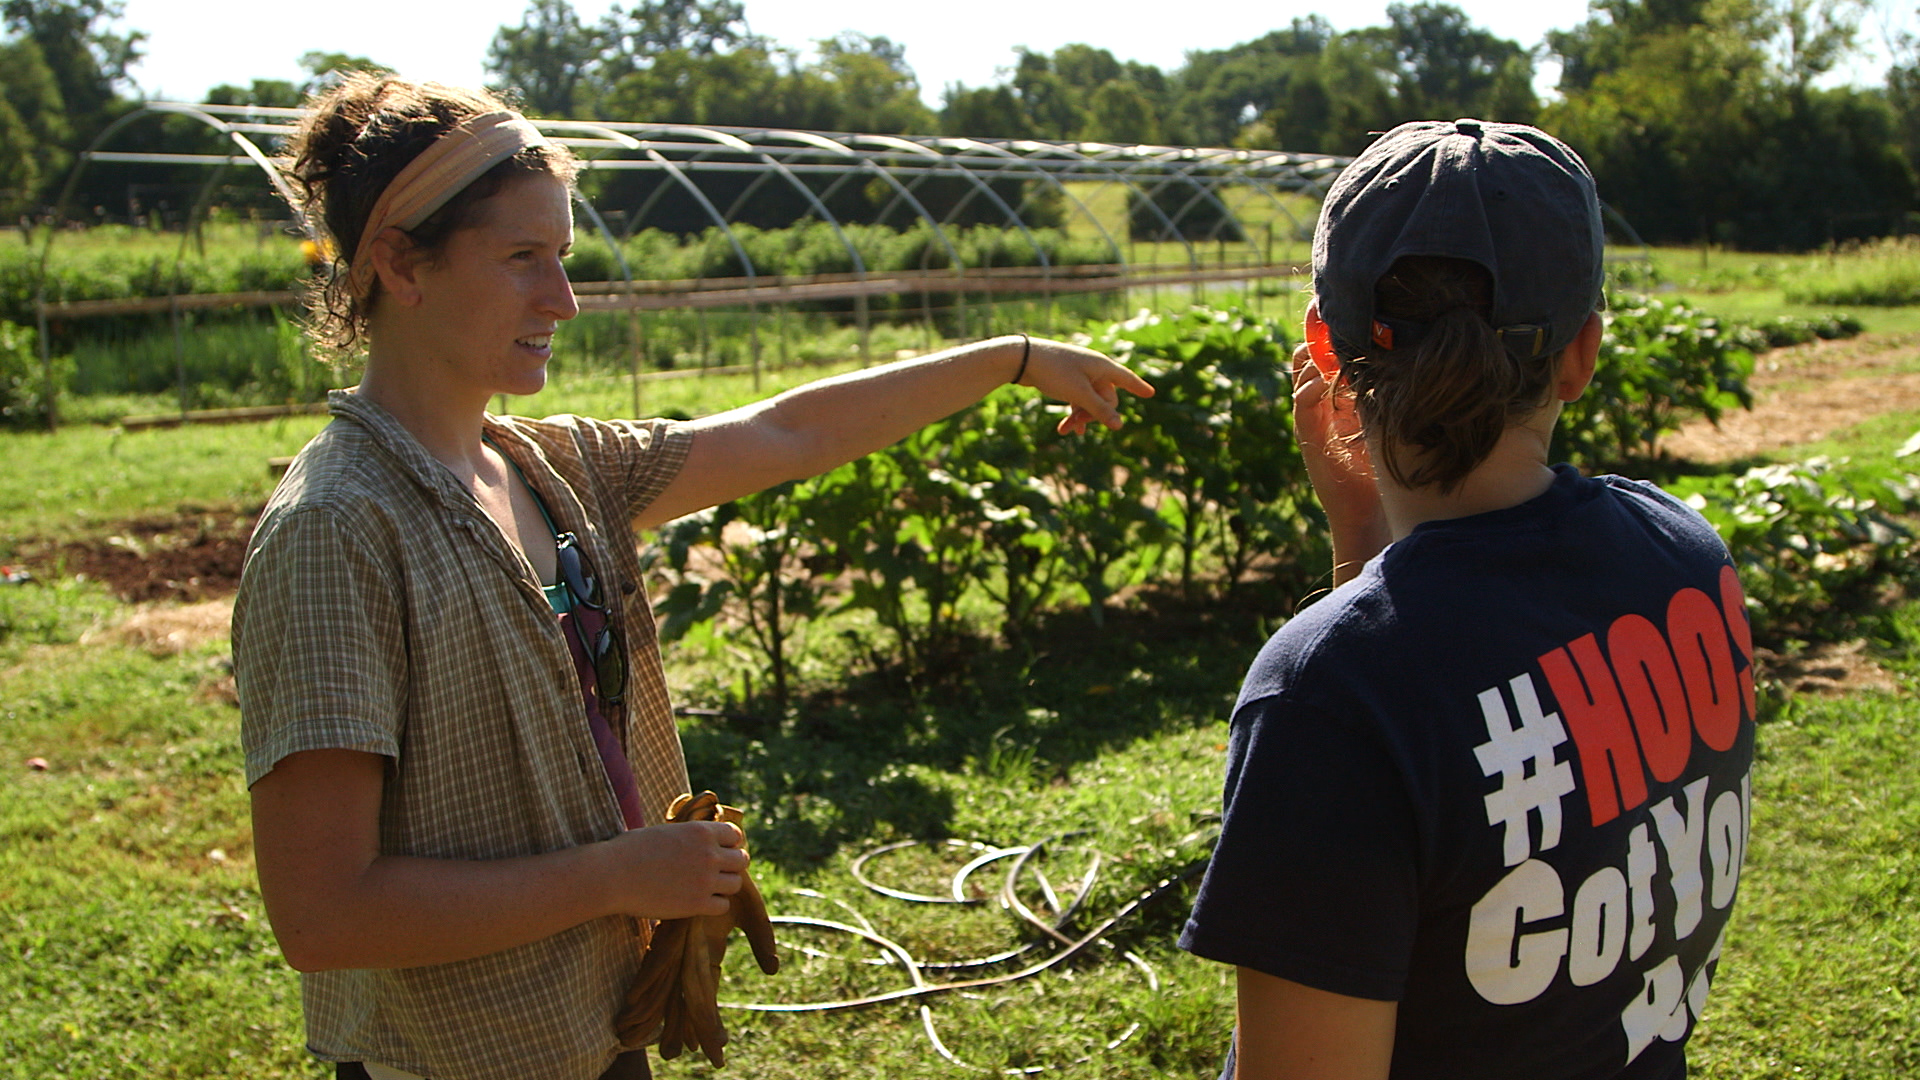 Emily Salle, who manages the Morven Kitchen Garden, talks with a student volunteer.